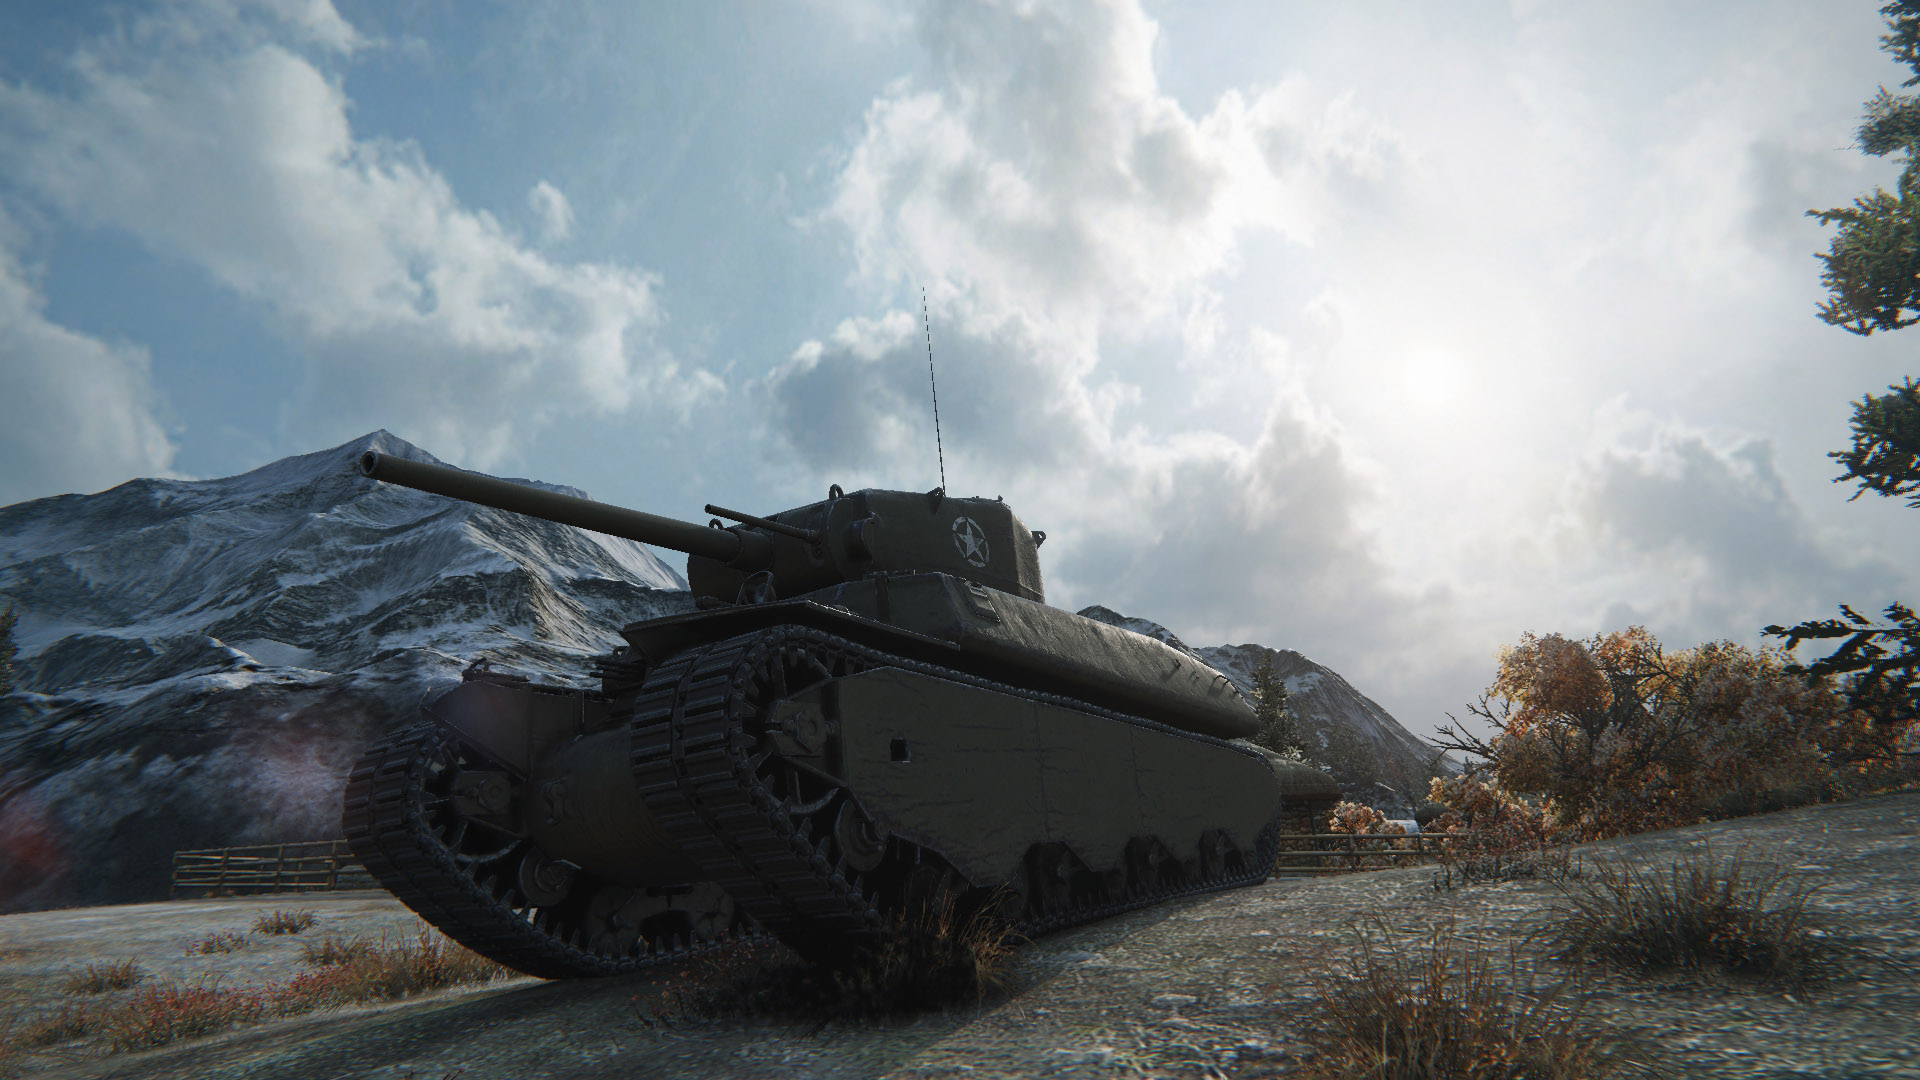 Take advantage of the tough turret and high rate-of-fire to bully your enemies in the T1 Heavy.